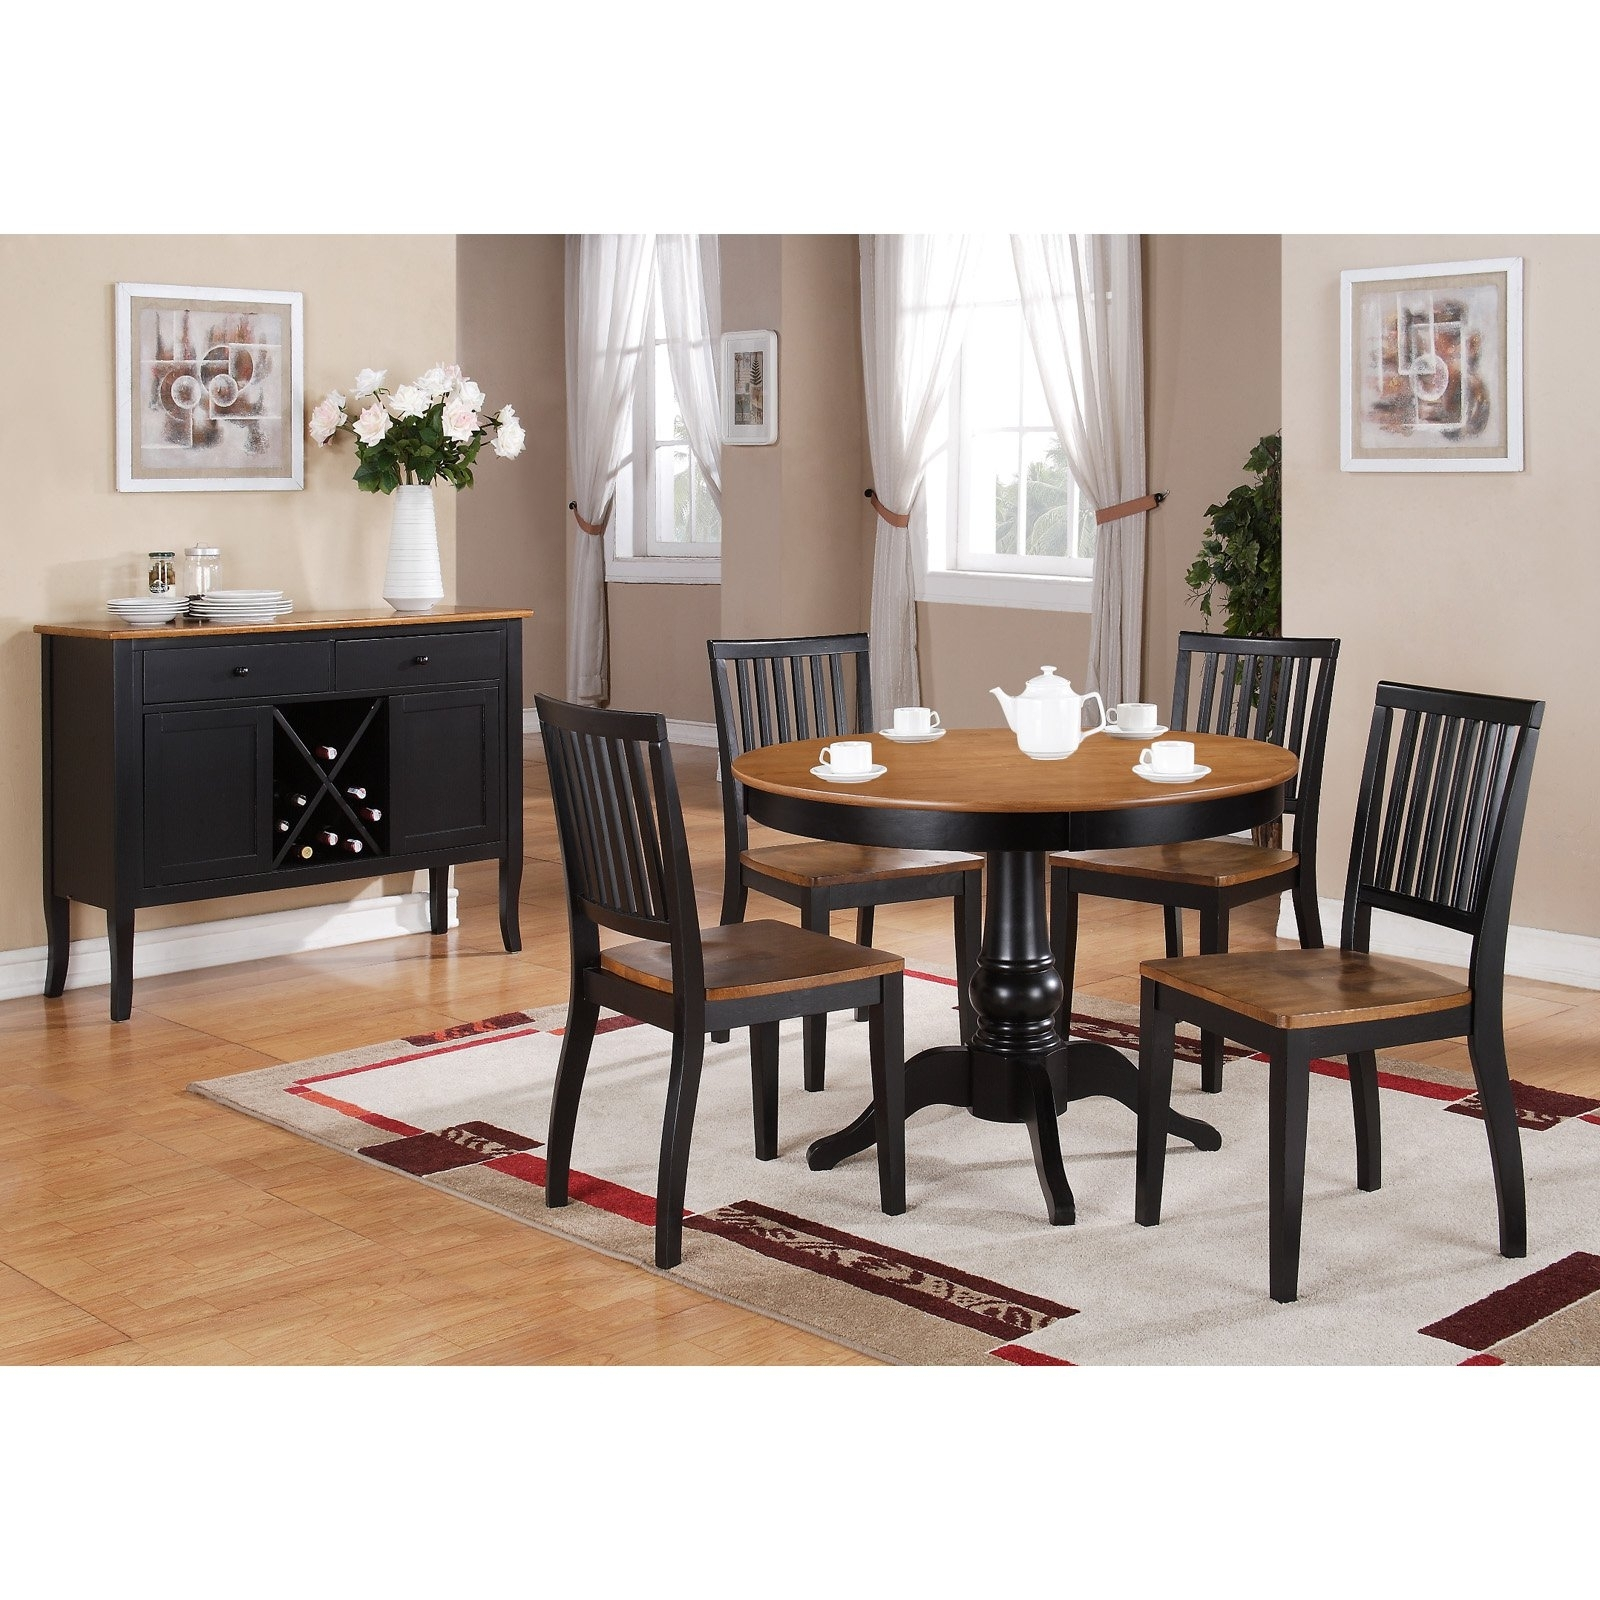 Candice Ii 5 Piece Round Dining Sets With Trendy Steve Silver 5 Piece Candice Two Tone Round Pedestal Dining Table (View 4 of 25)